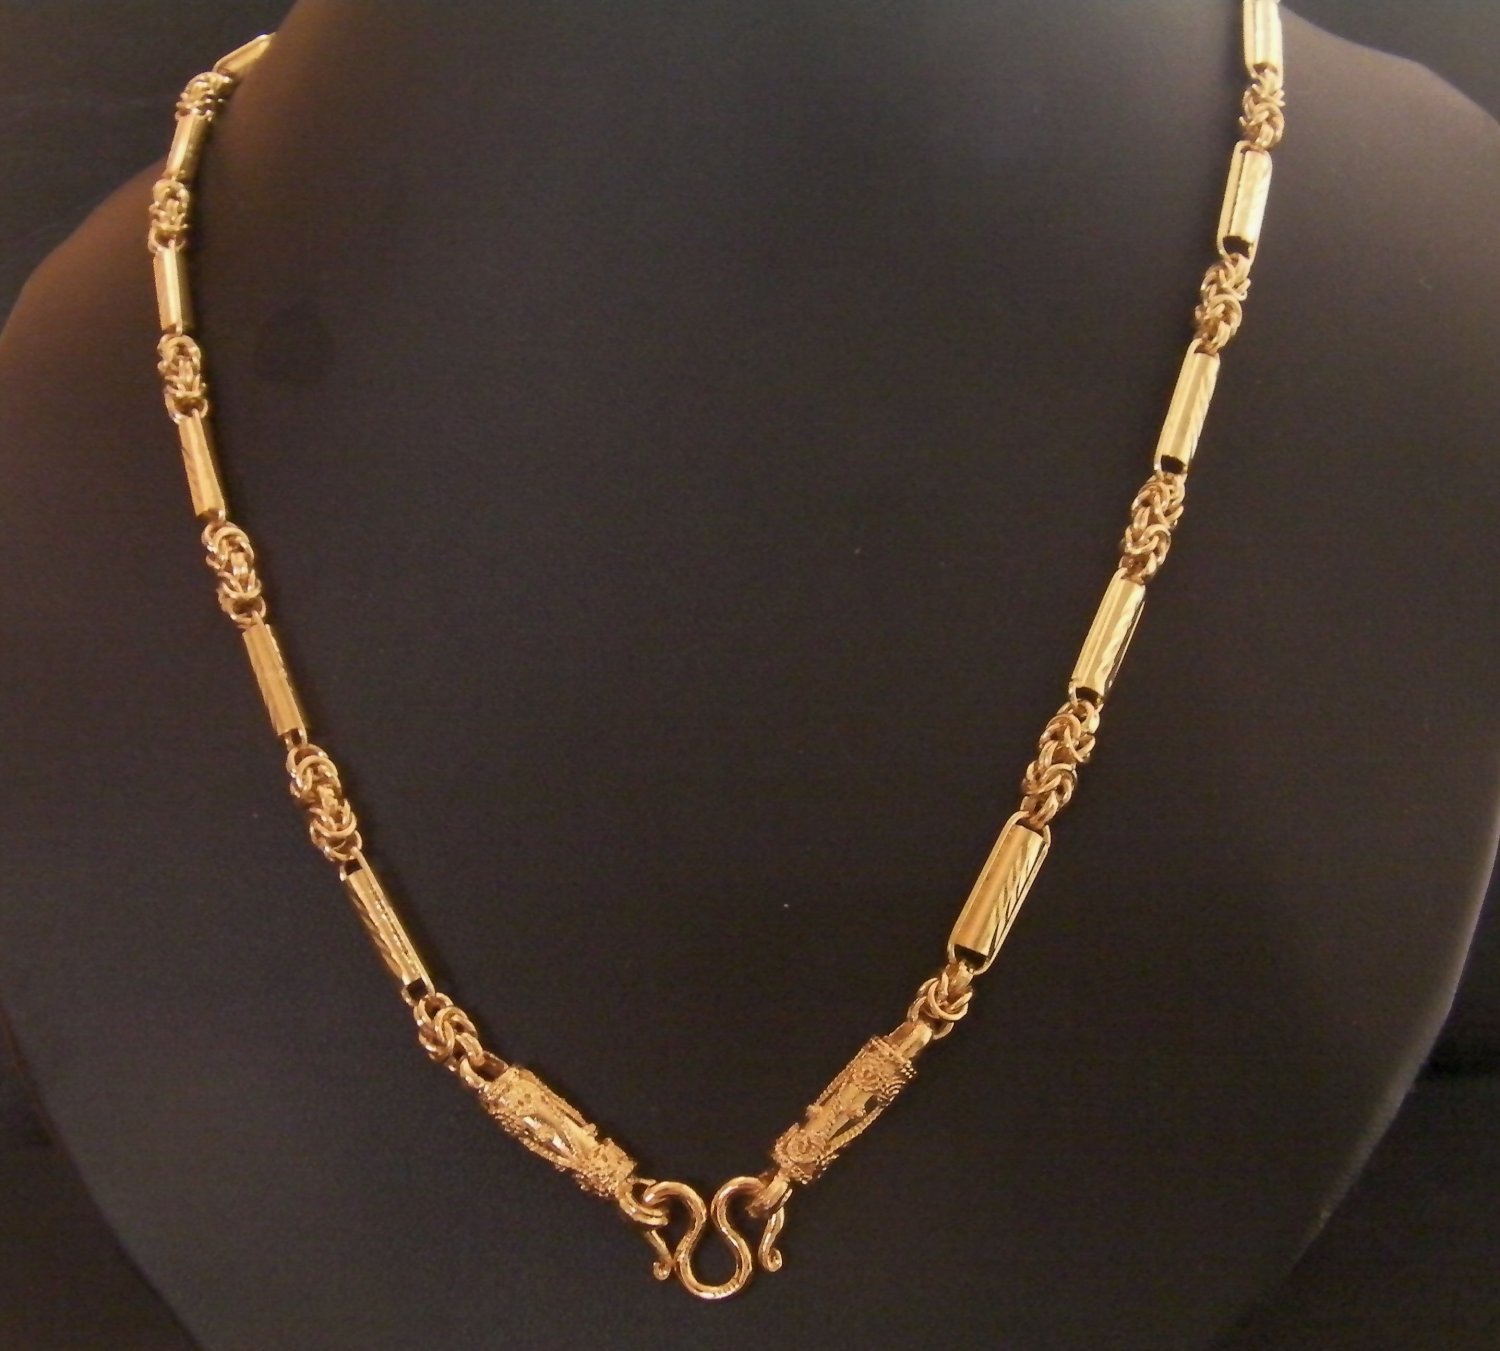 26 Inch attractive chain and rod 24K gold filled necklace 112